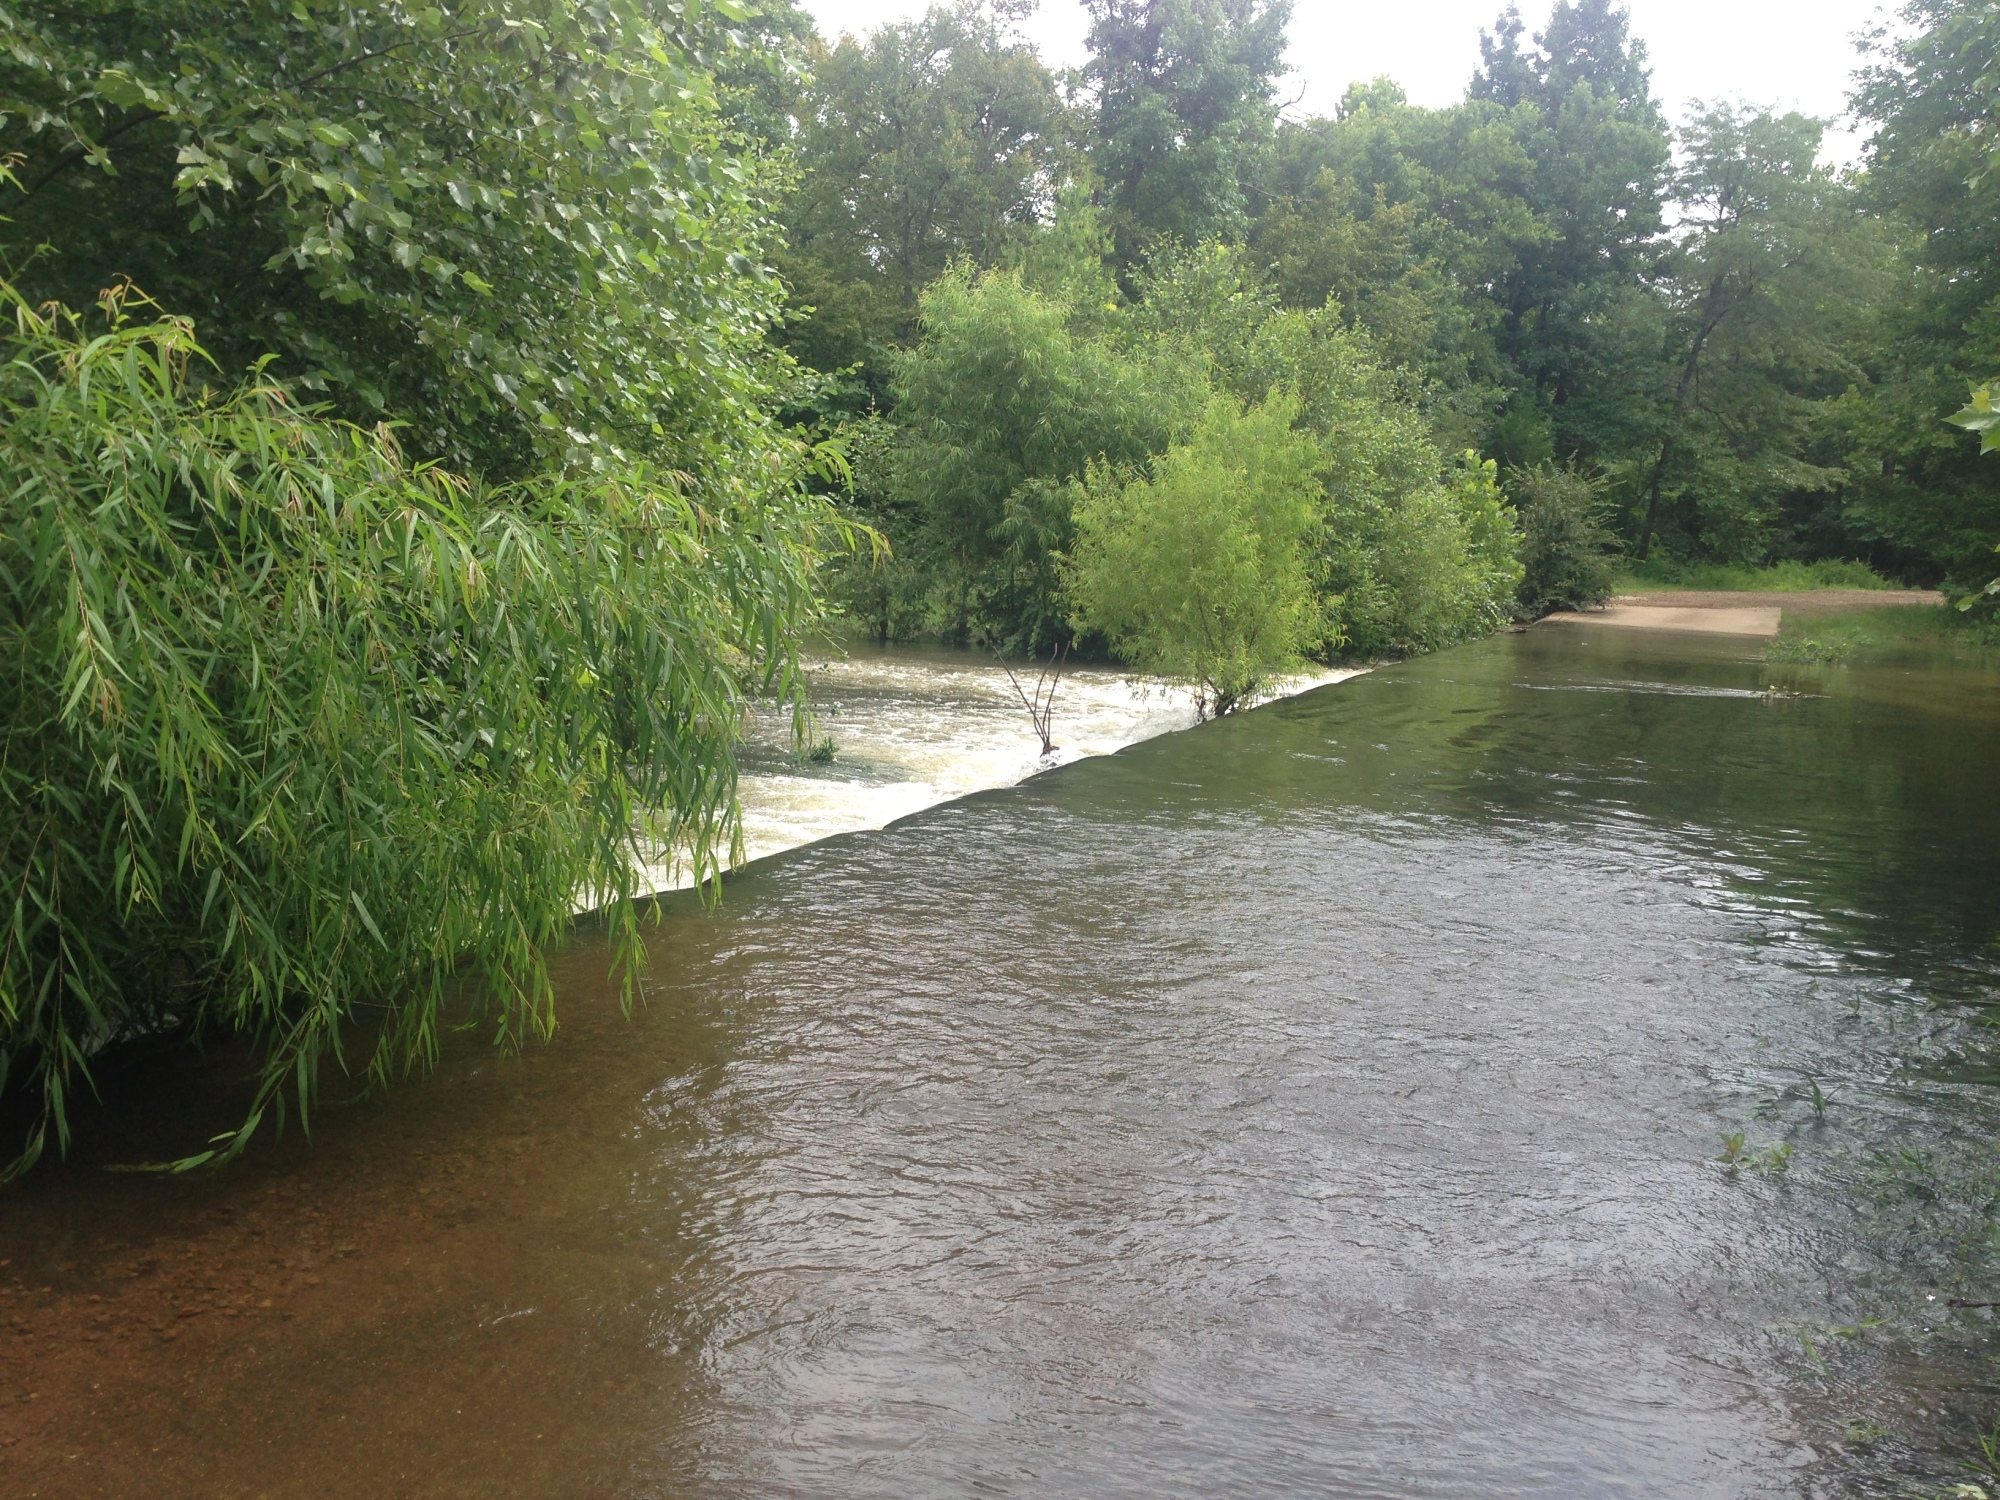 Swollen creek where woman drowned